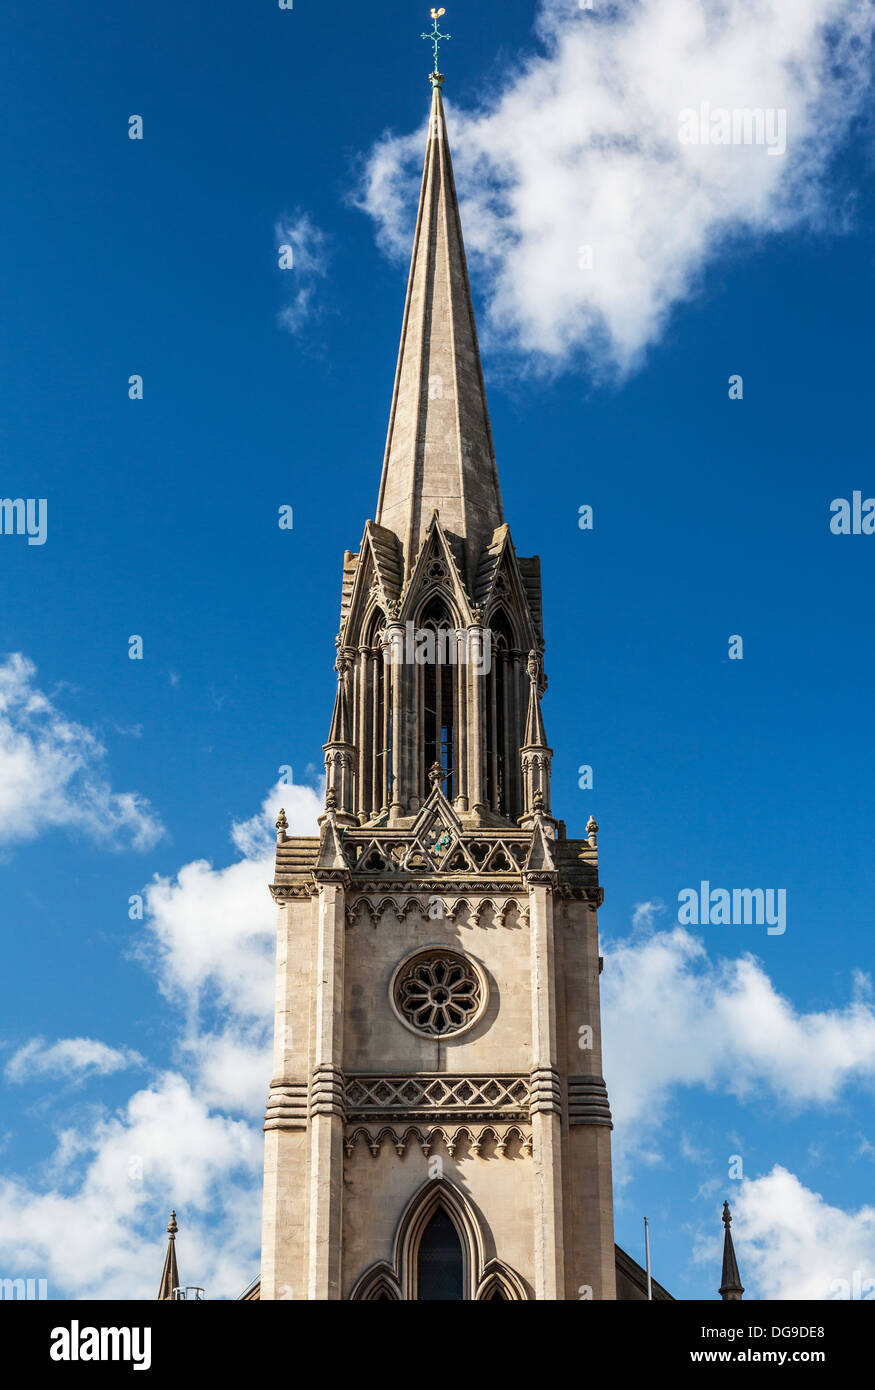 South or 'W' tower topped by tall octagonal open lantern with spire flanked by polygonal porches of St. Michael's Church, Bath. - Stock Image